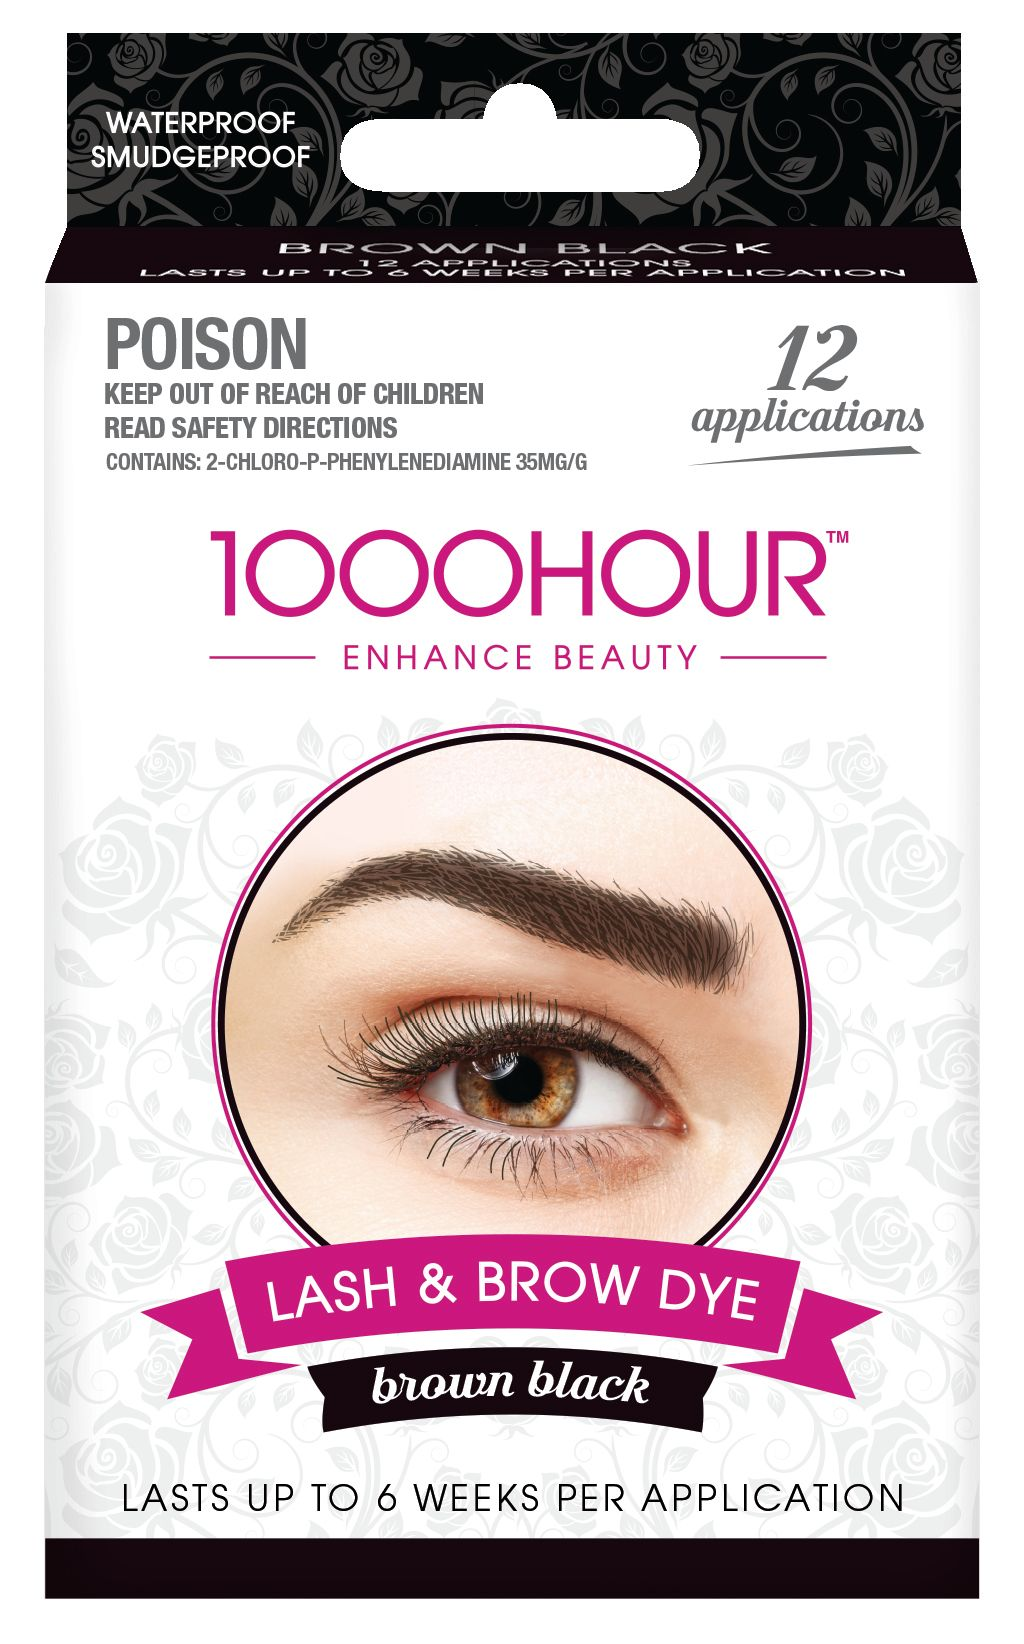 1000HOUR LASH & BROW DYE KIT - BROWN BLACK